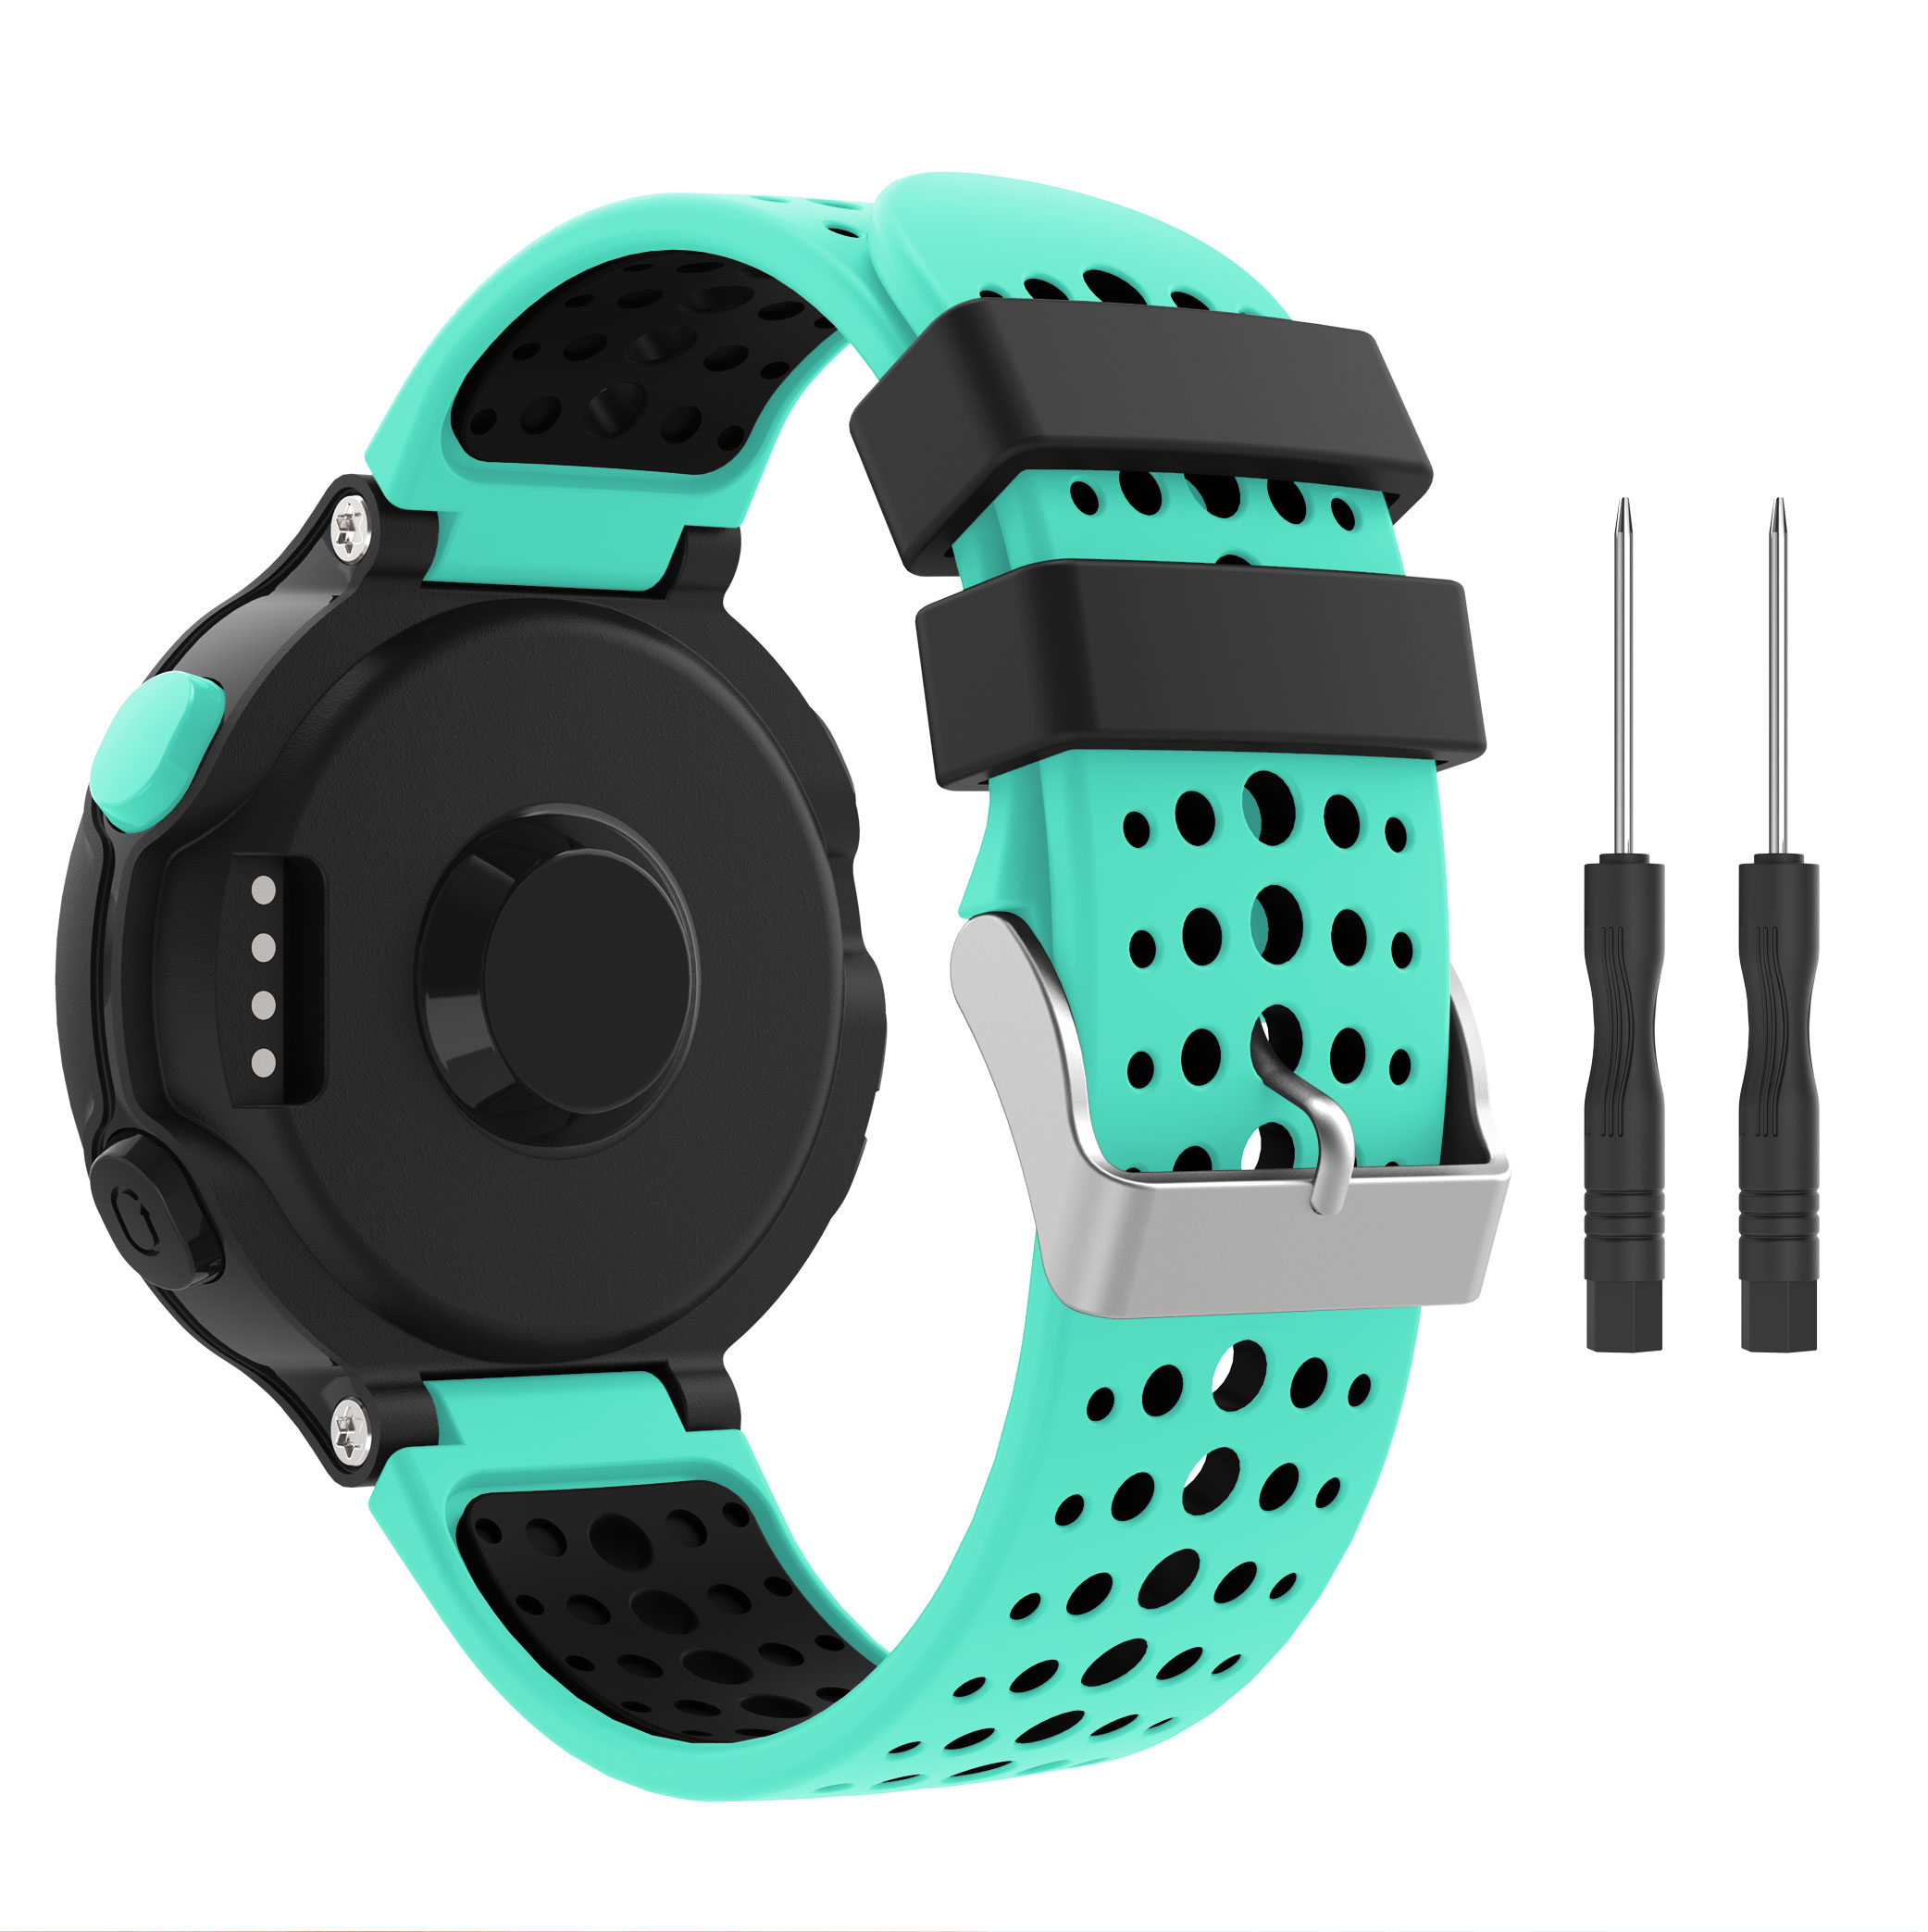 Yayuu Two-tone Silicone WatchBand For Garmin Forerunner 220/230/235/620/630/735XT Bracelet Strap Buckle Replacement WristStrap